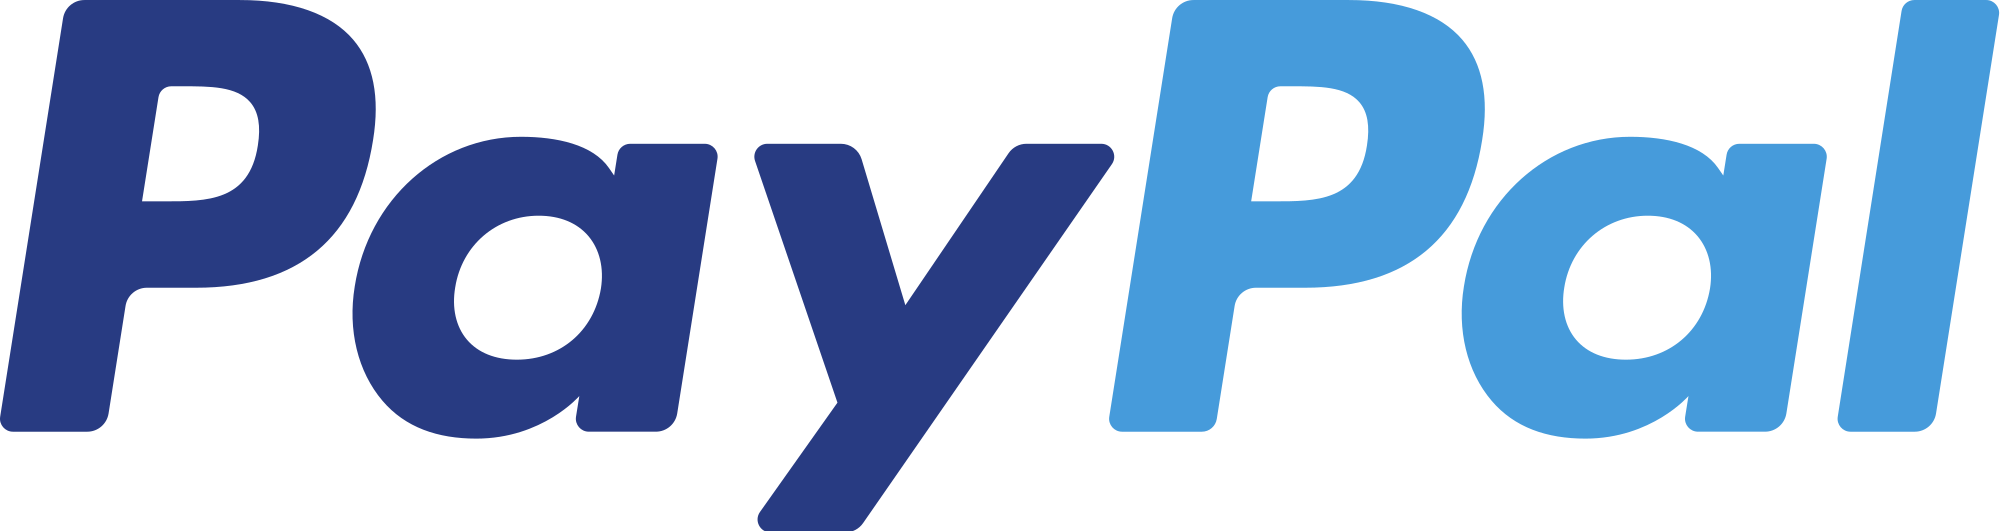 Paypal logo png. File svg wikimedia commons